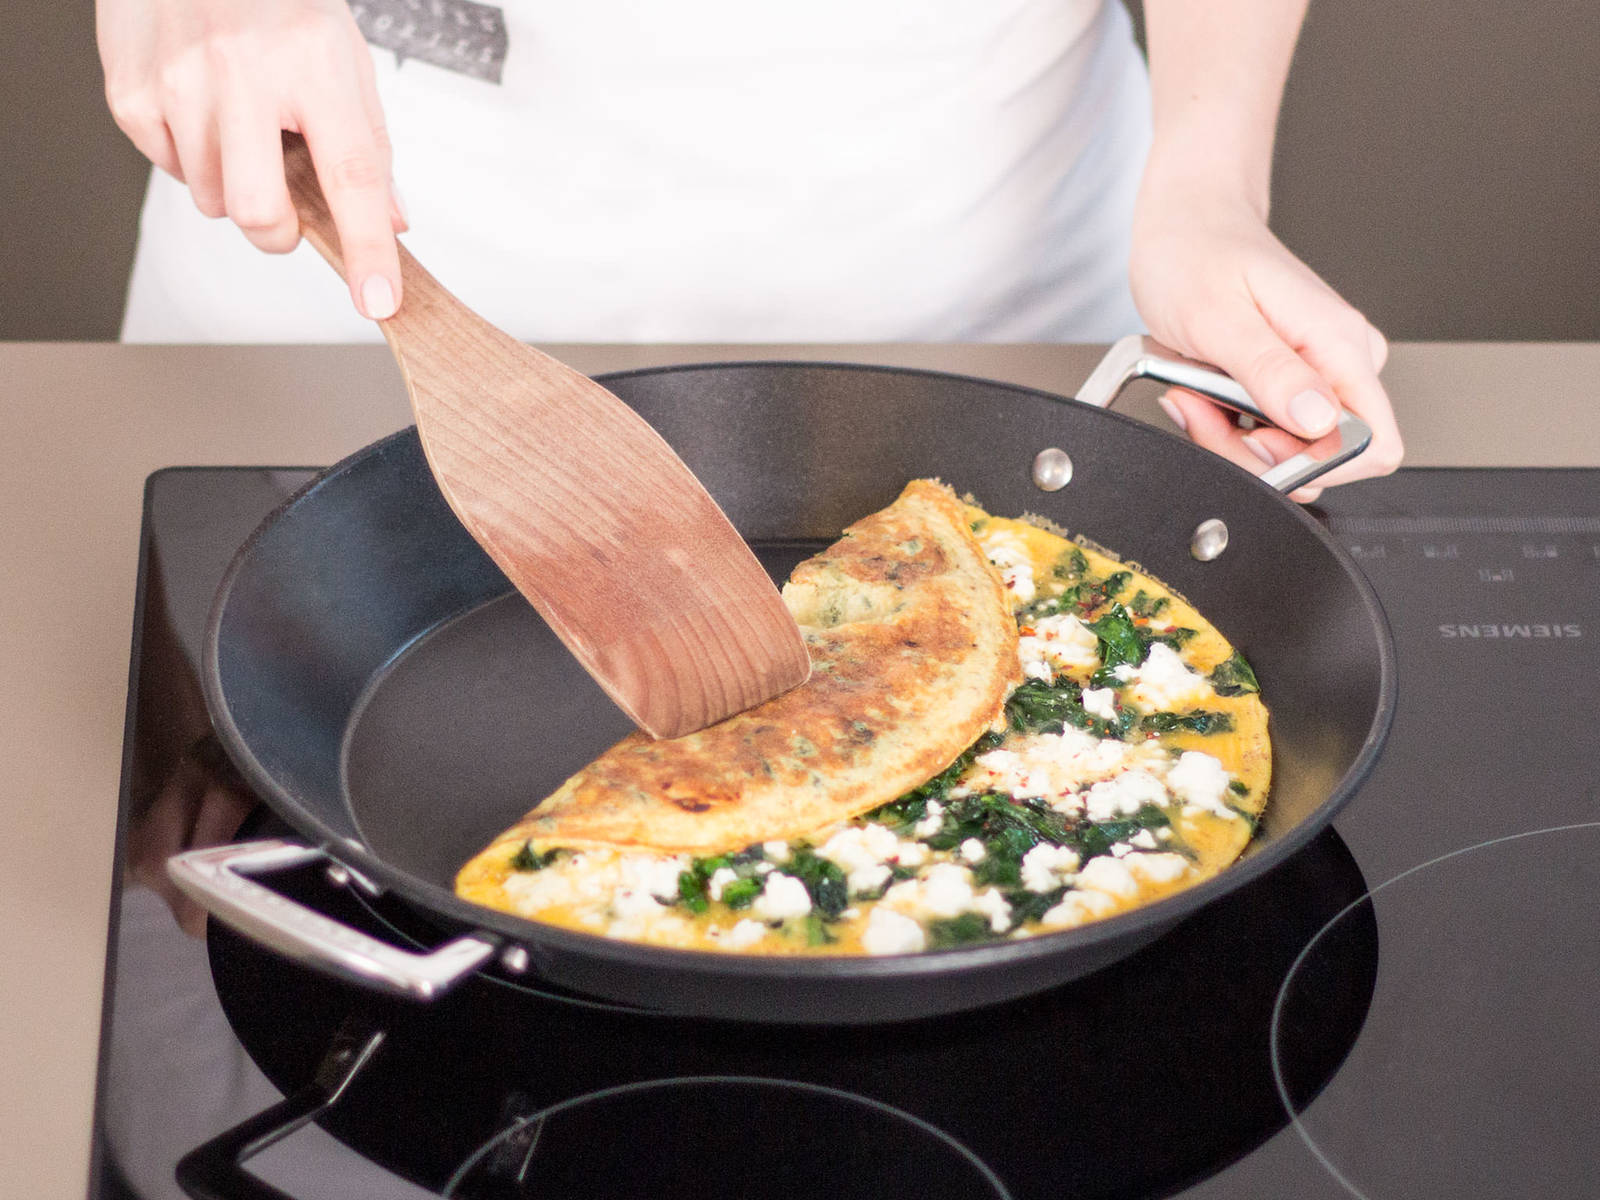 Fold omelette to close, like you would a letter, and continue to cook until heated through.Transfer to plate and enjoy!